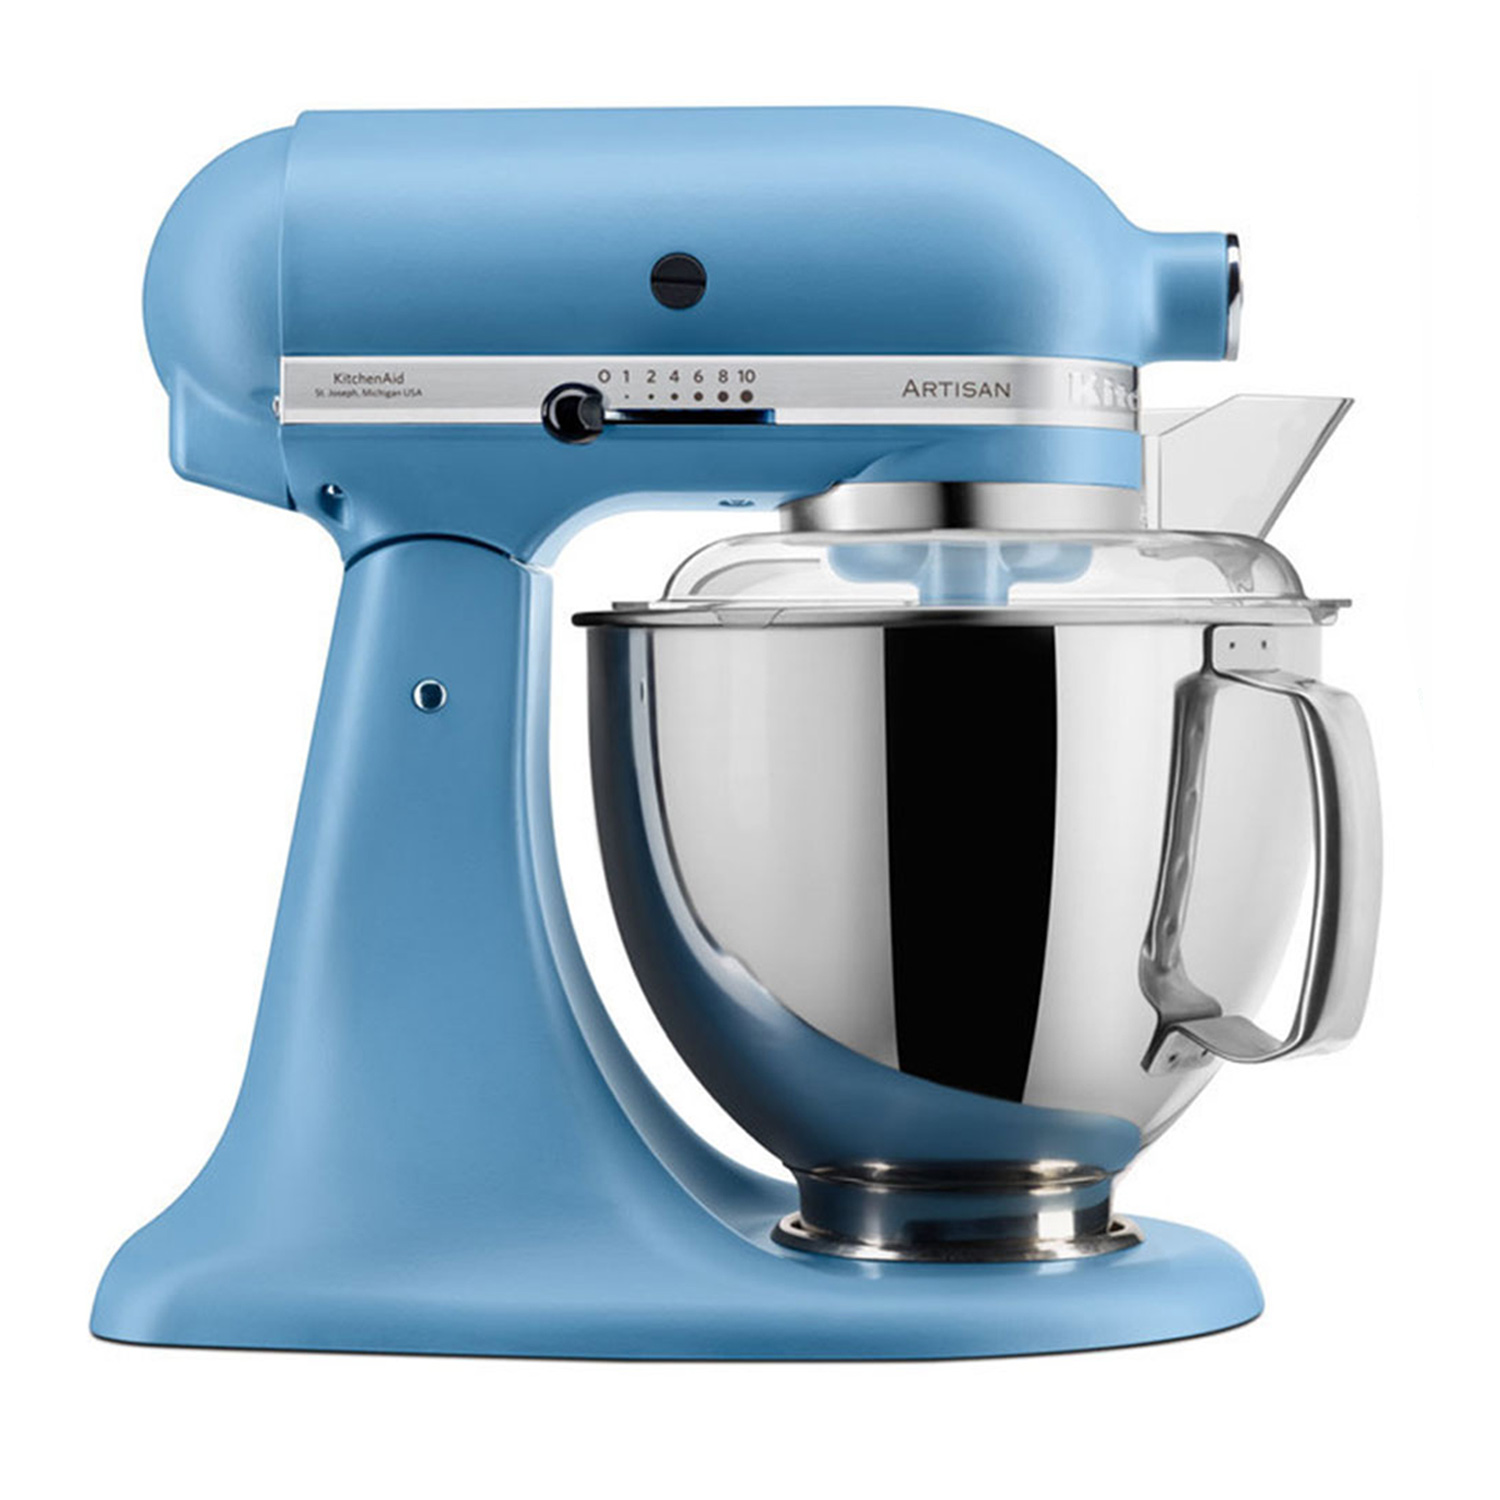 Kitchenaid Artisan Tilt Head Stand Mixer With Pouring